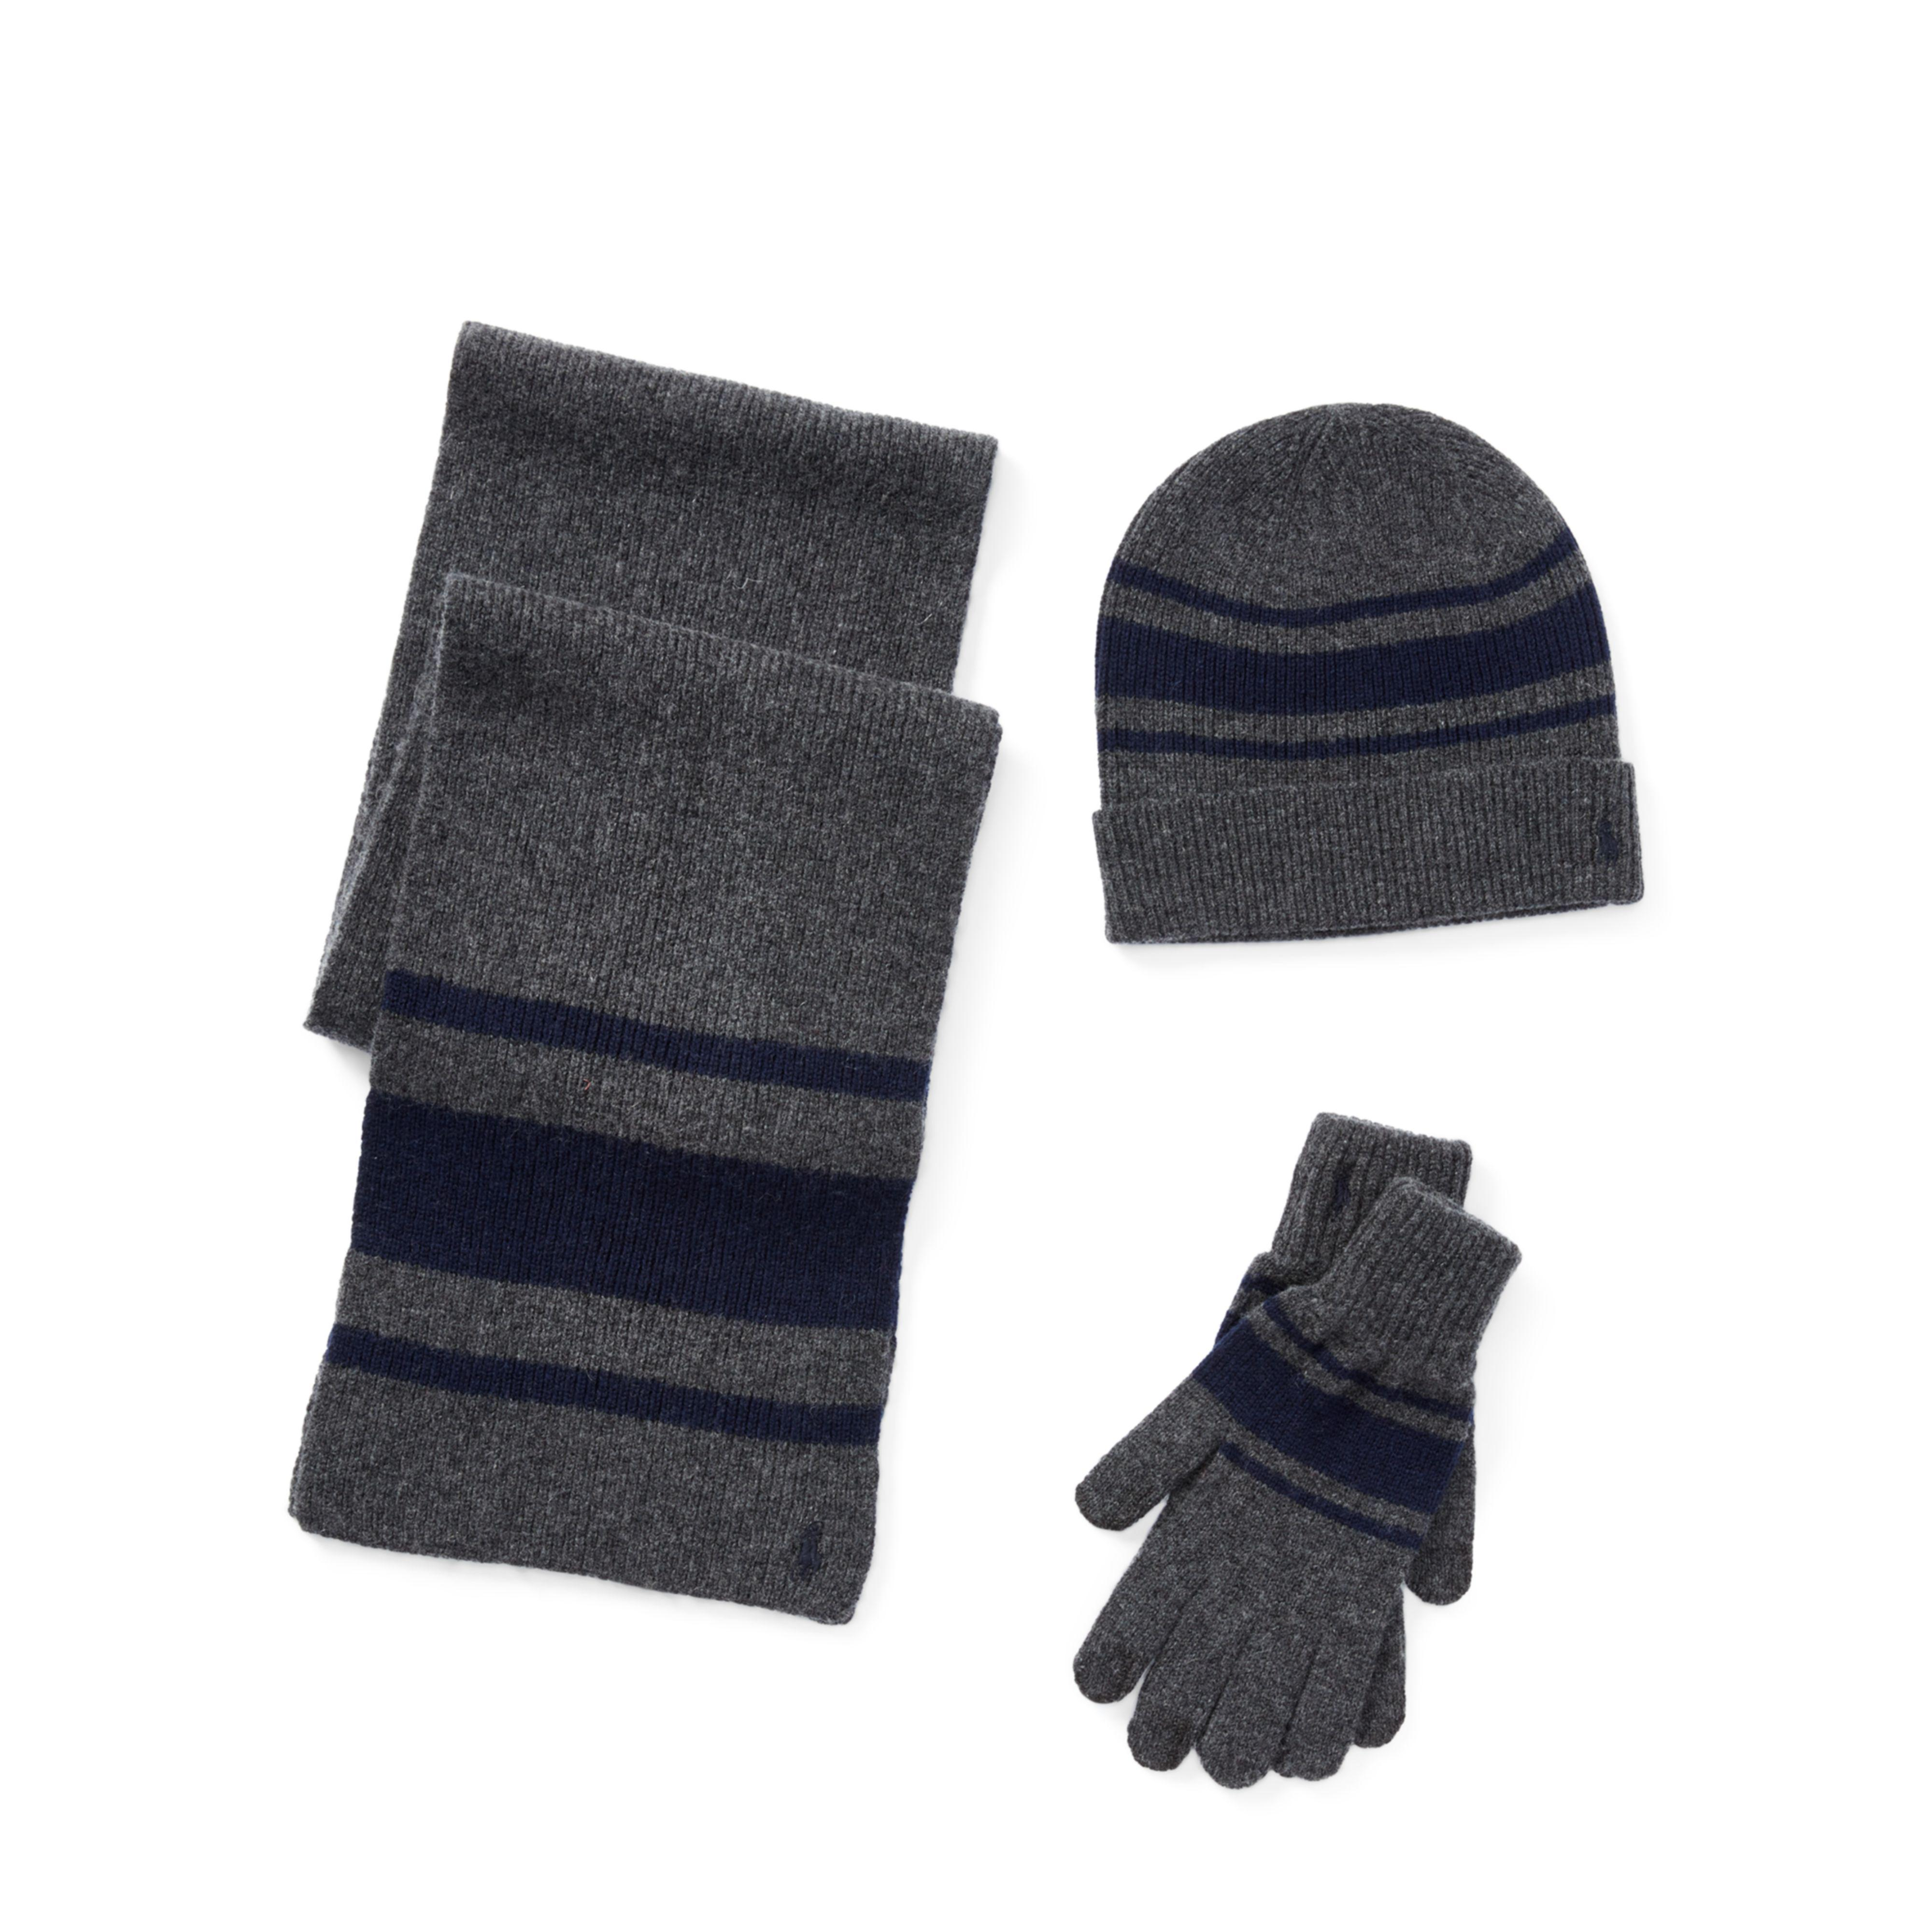 505015ee2a1e0 ... wholesale lyst polo ralph lauren striped hat scarf glove set in gray  for men 58af0 ef7b6